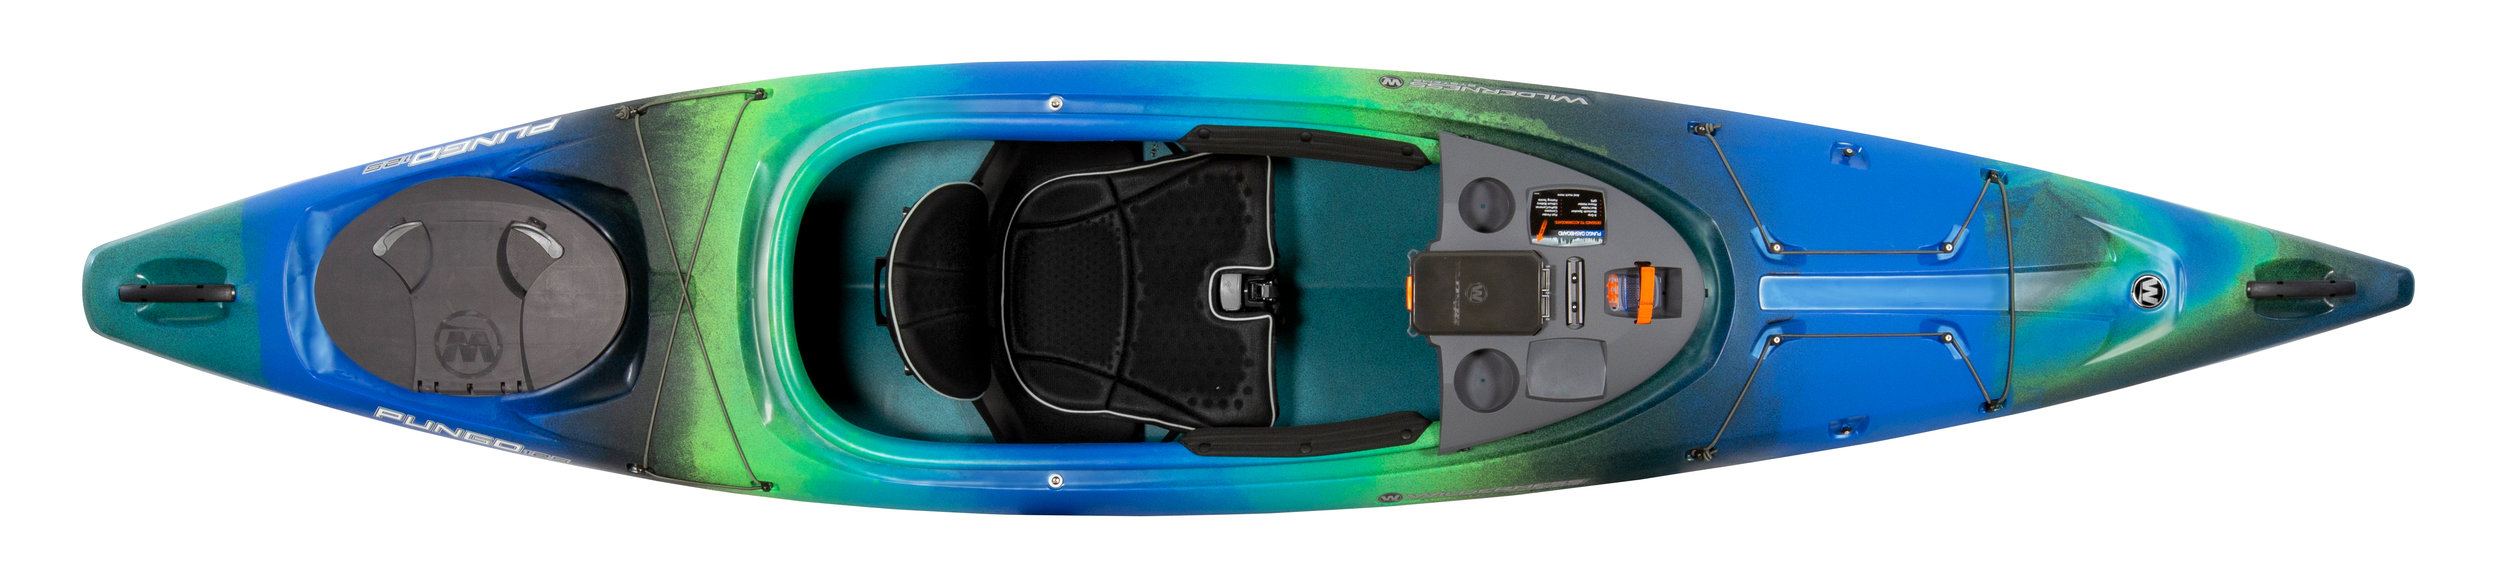 Pungo 125:  Slightly longer and broader that the Pungo 120, with a spacious cockpit. Ideal for larger paddlers.